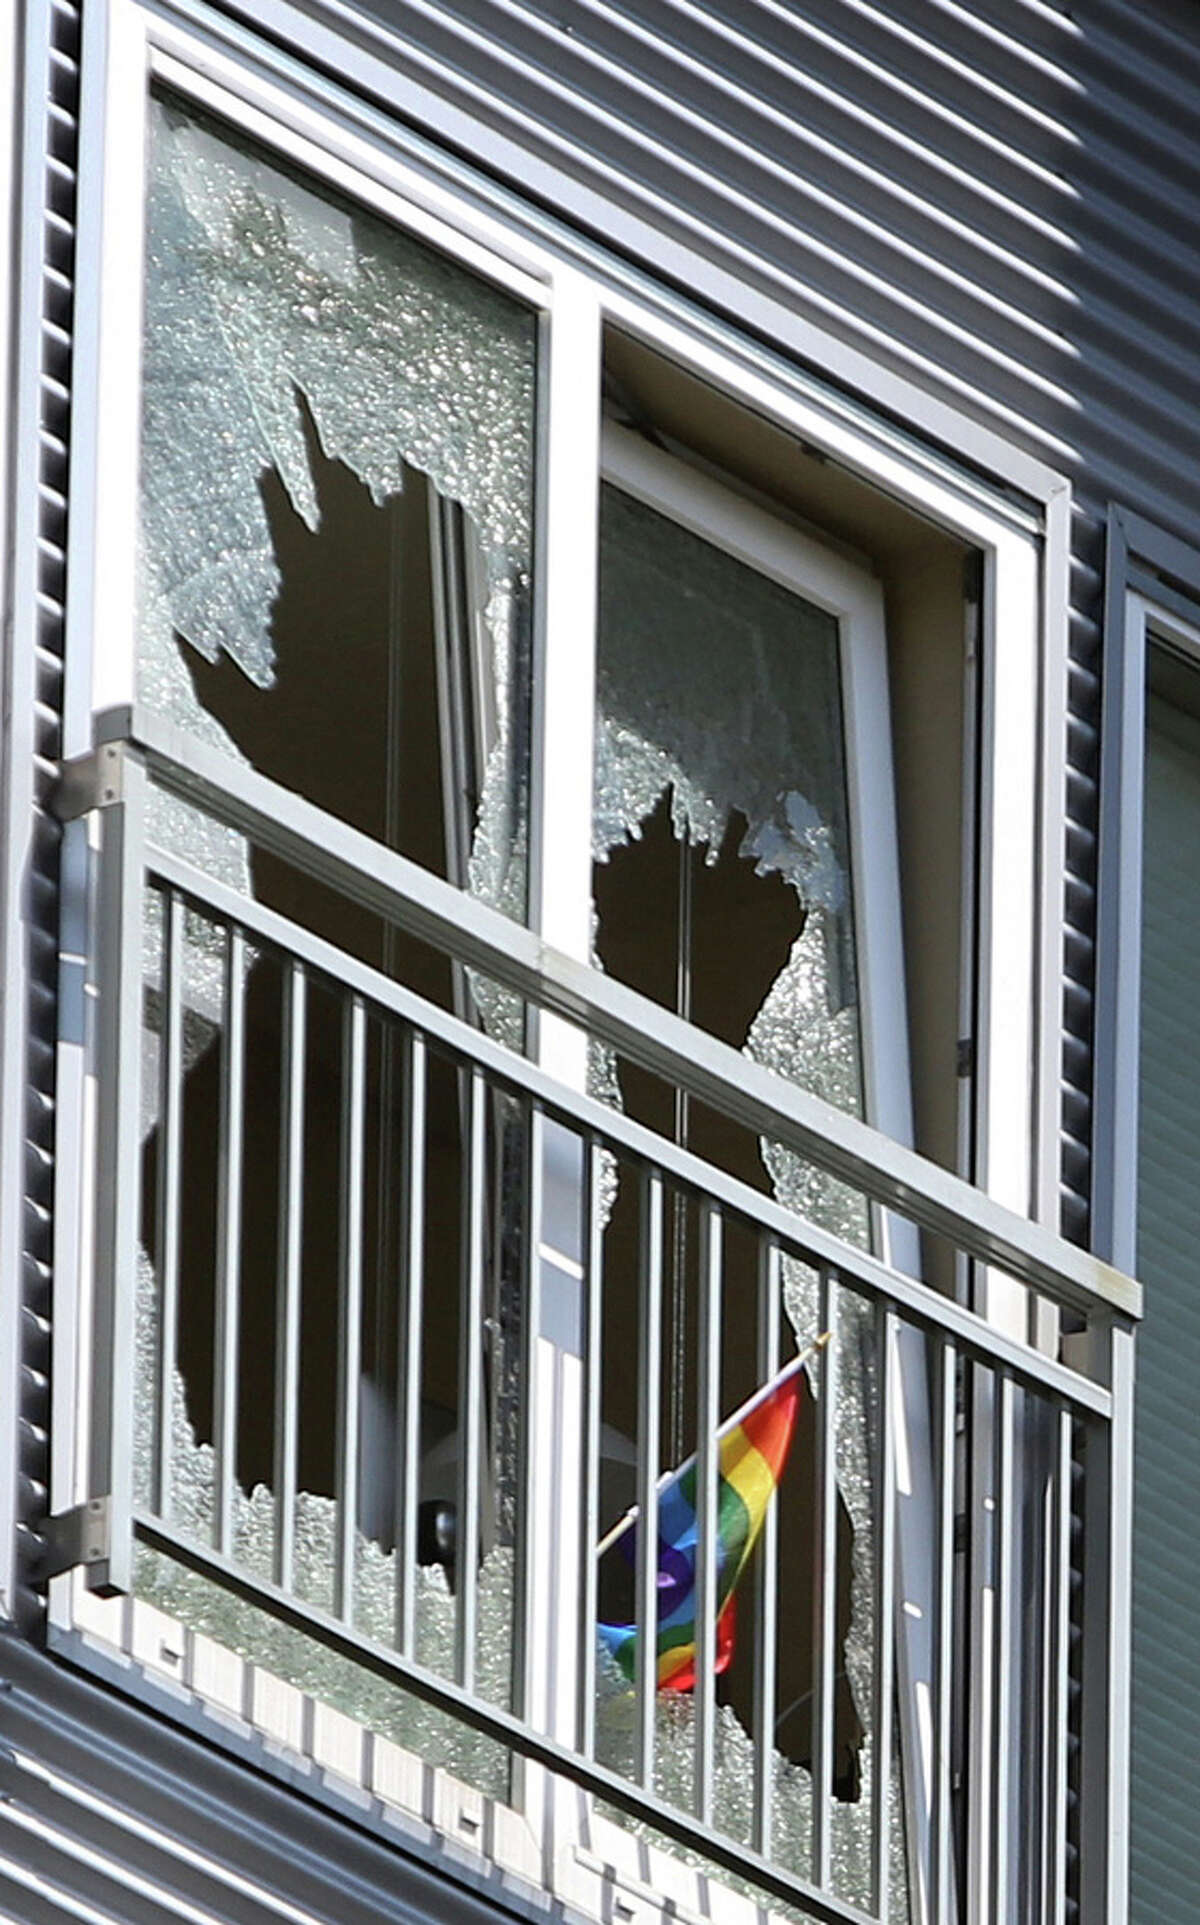 A shattered window is shown in an apartment after a standoff between an armed man and Seattle Police SWAT officers ended with the man fatally shot on Friday, July 5, 2013 in Seattle's Capitol Hill neighborhood. The man fired his gun in the direction of officers when they responded and fatally shot him.